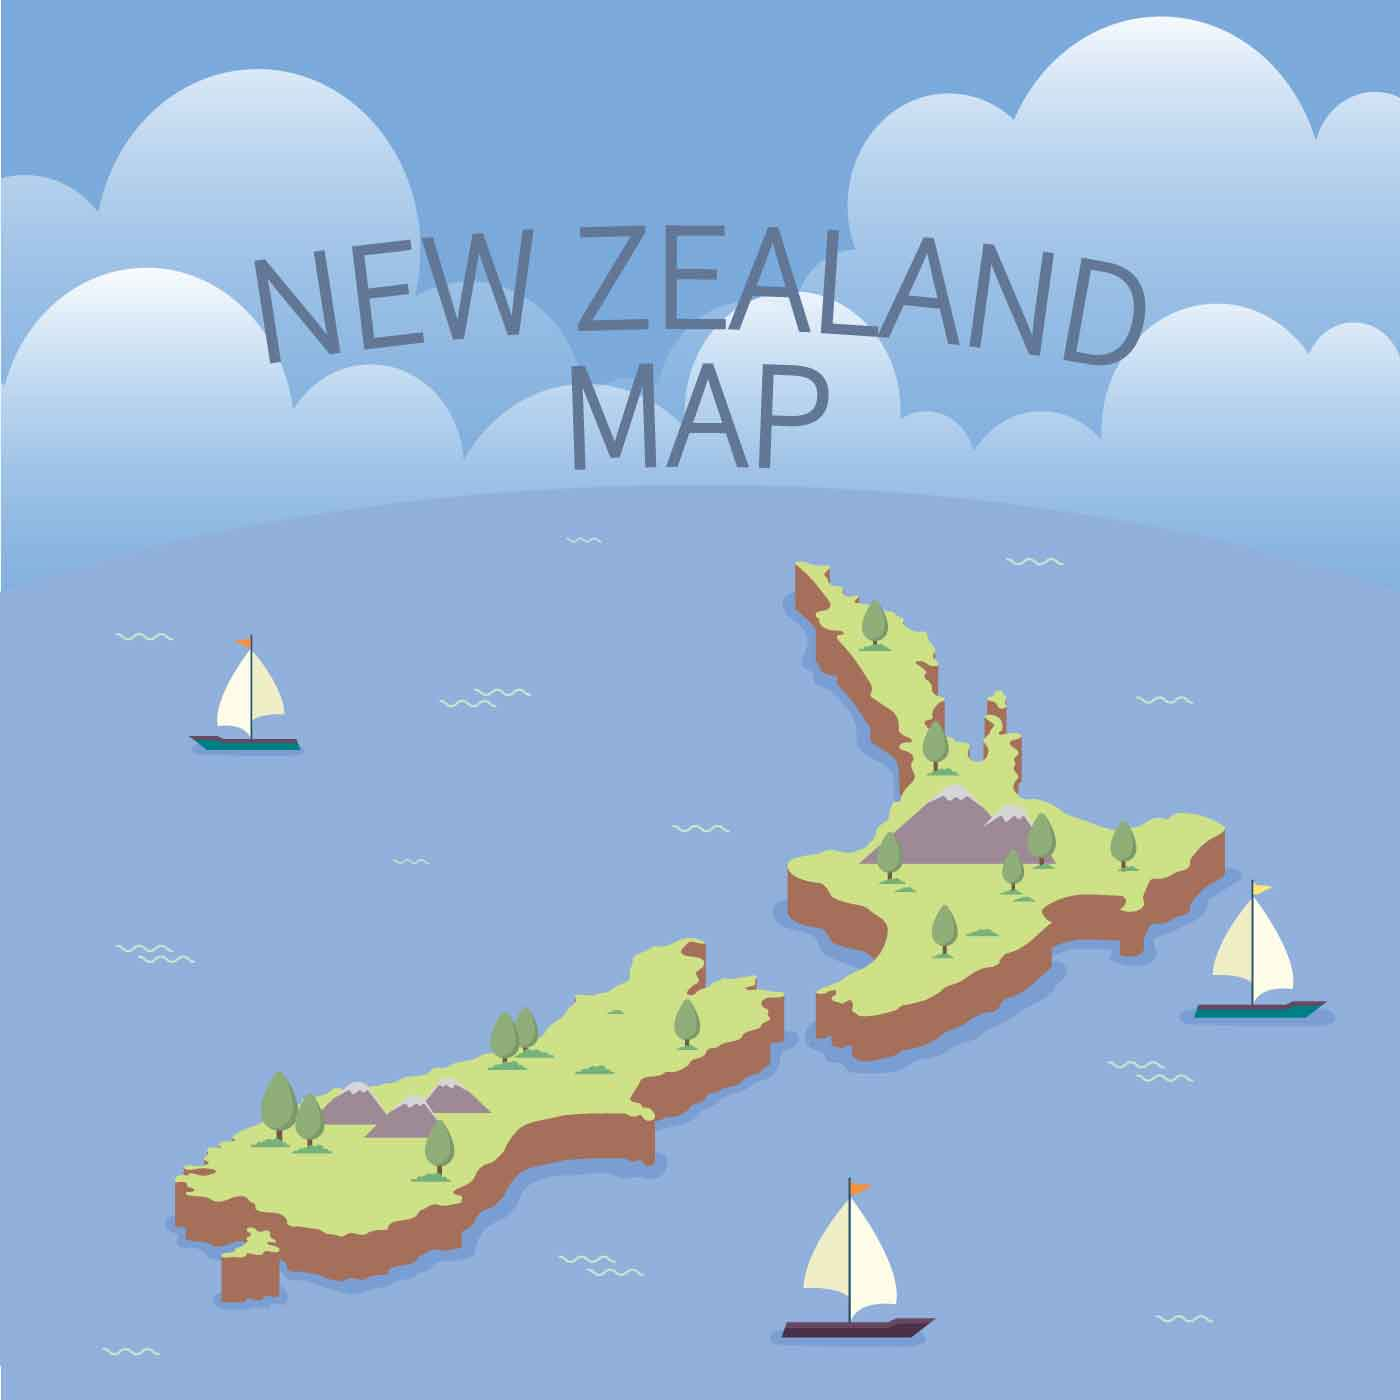 Free New Zealand Maps Illustration - Download Free Vectors ...